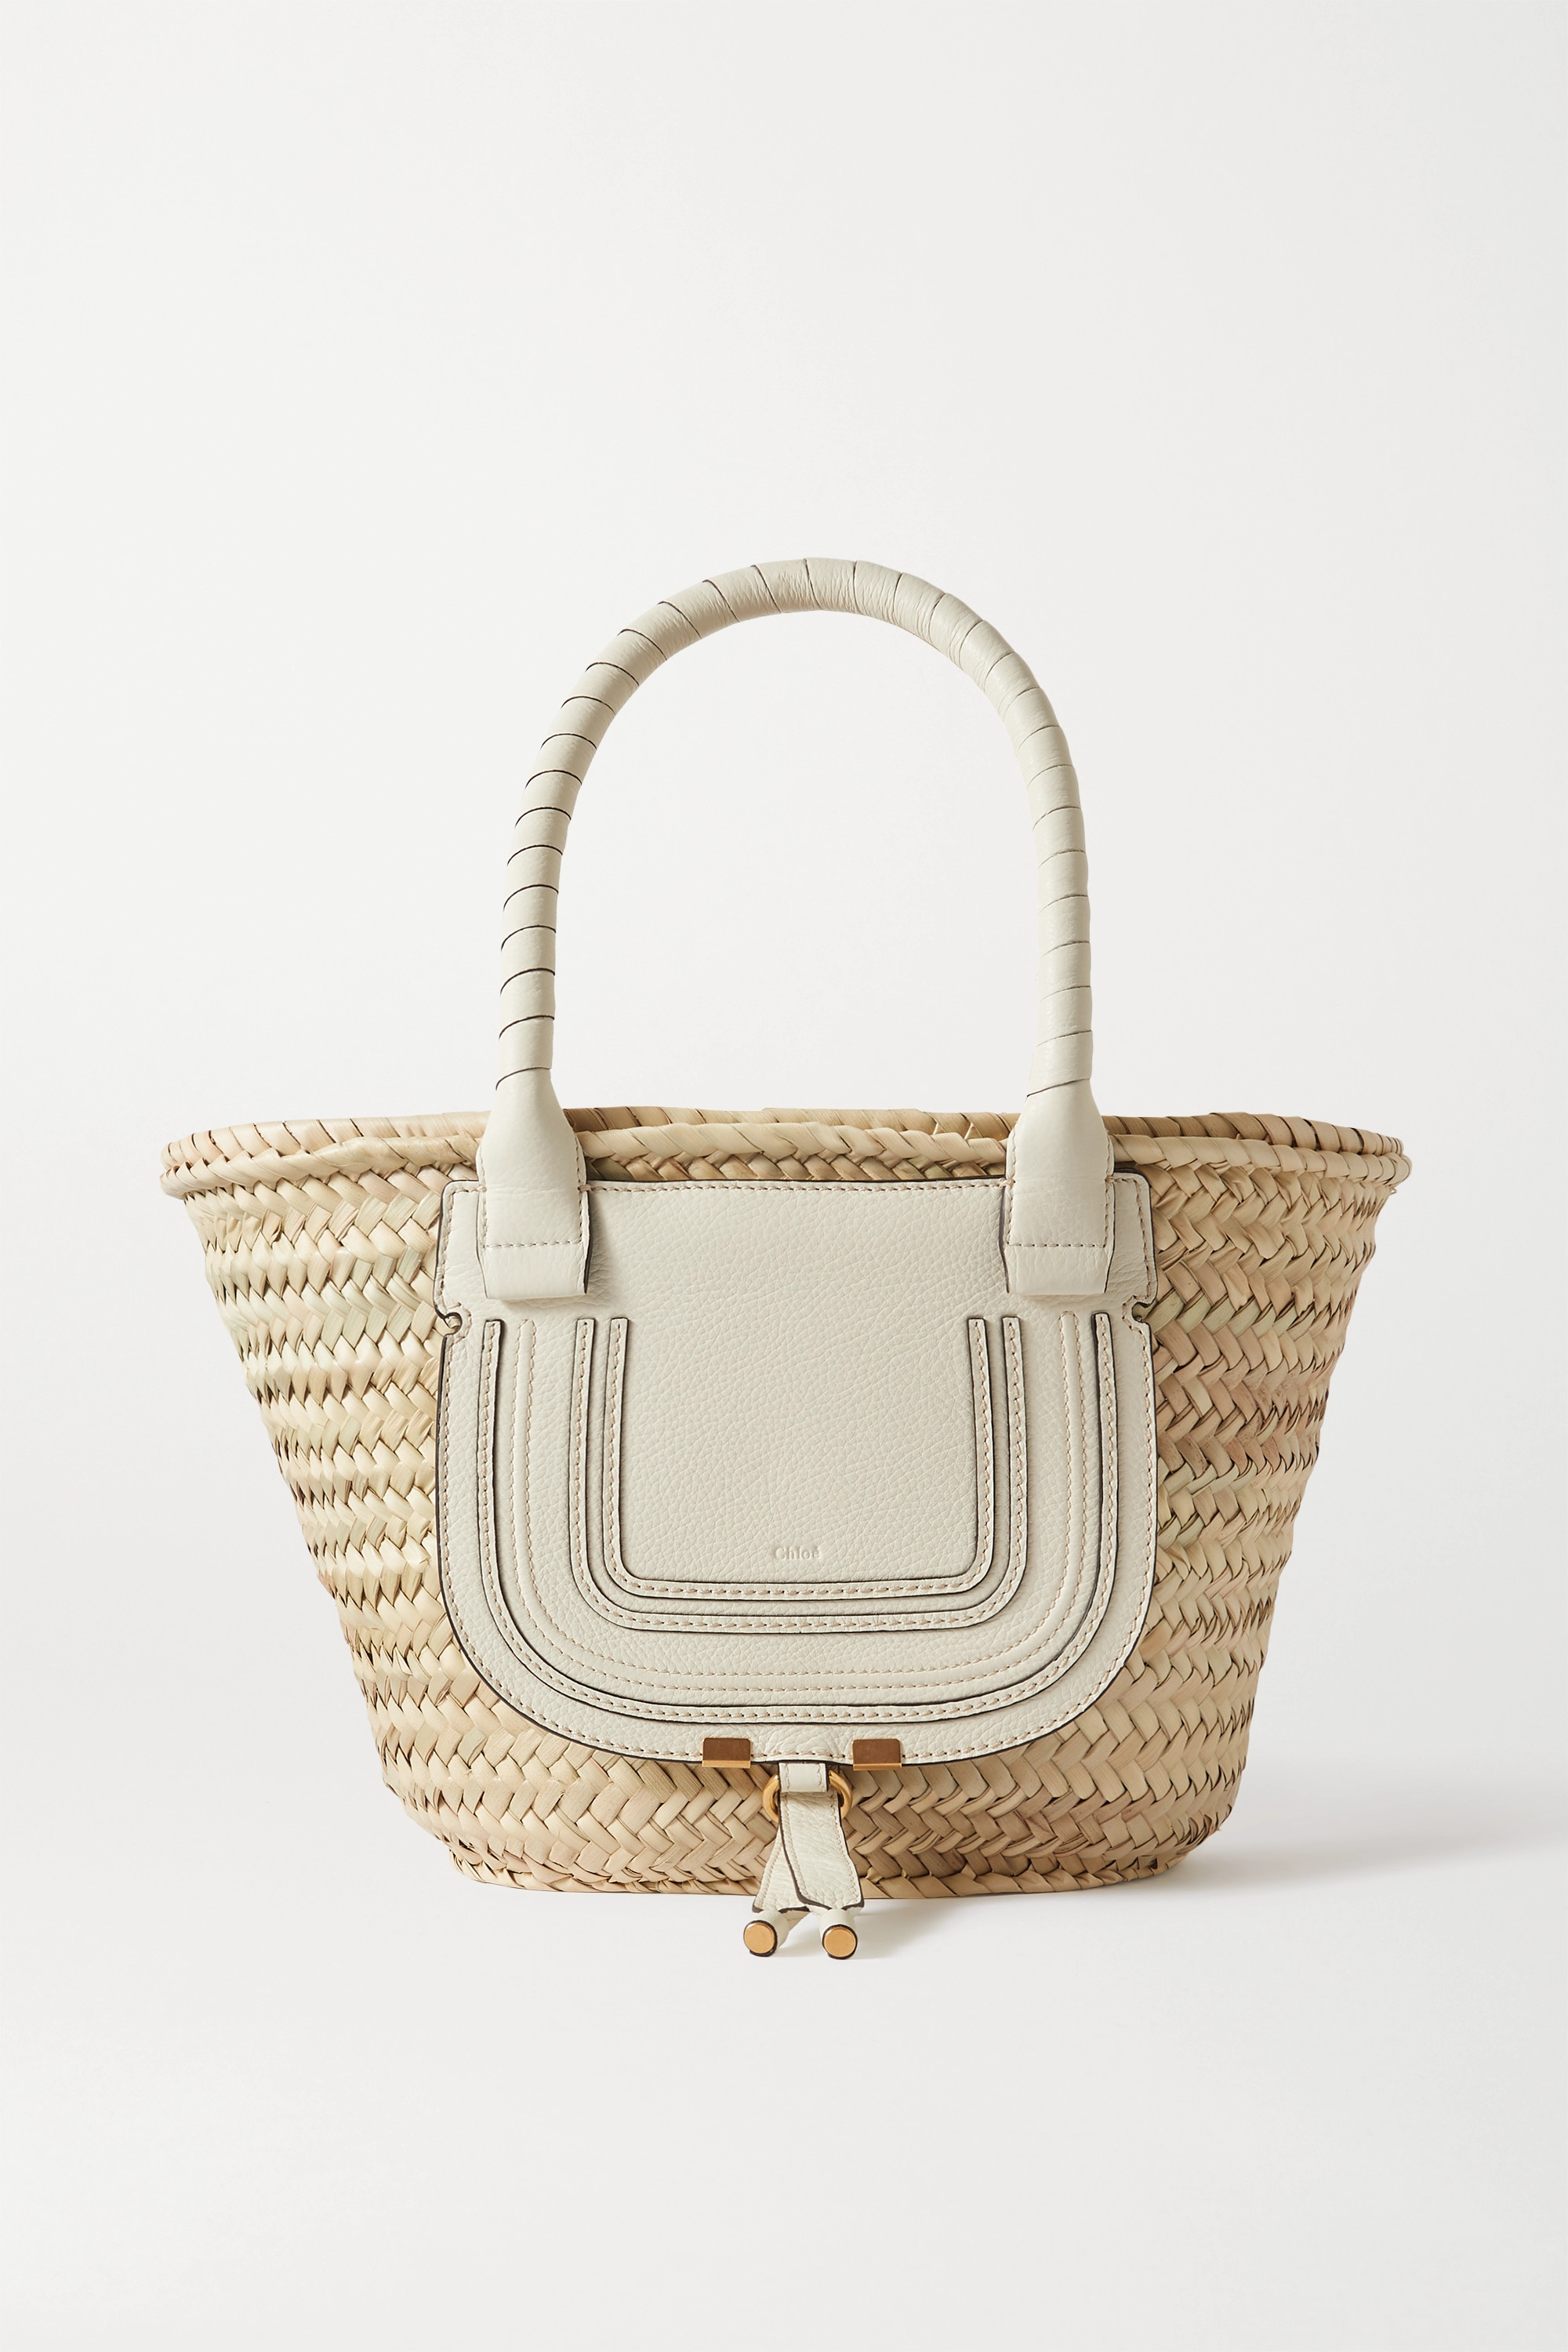 Chloé Marcie textured leather-trimmed raffia tote